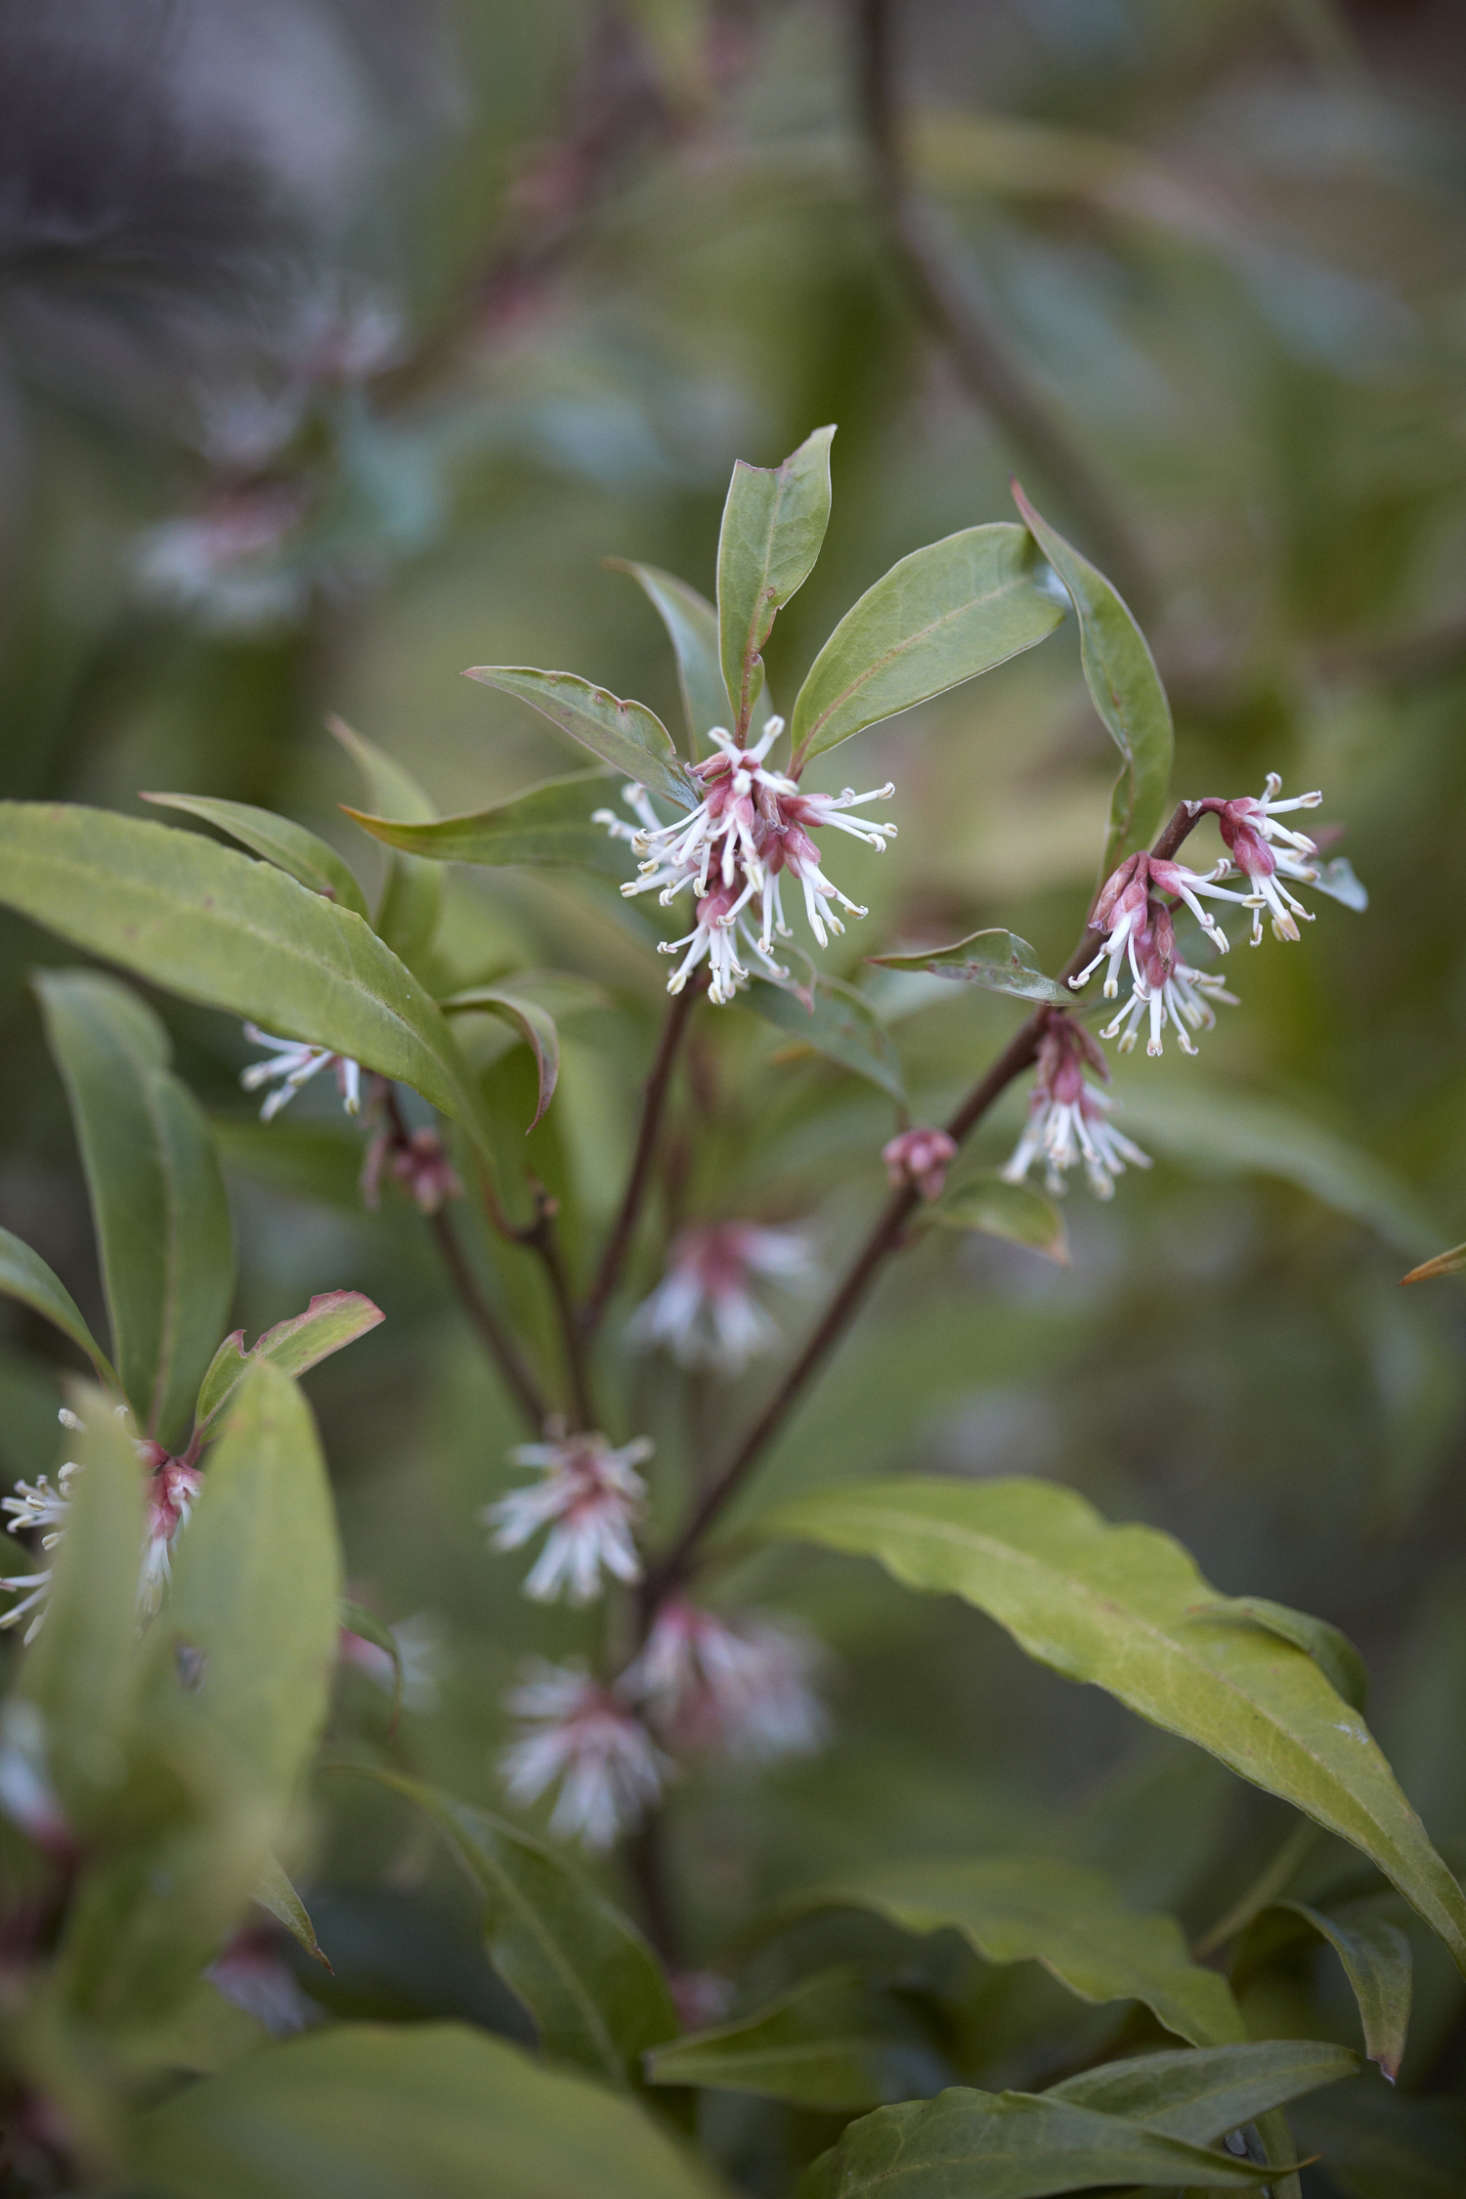 The foliage of Sarcococca hookeriana var. digyna is longer and more tapered and more matte than the species Sarcococca confusa.